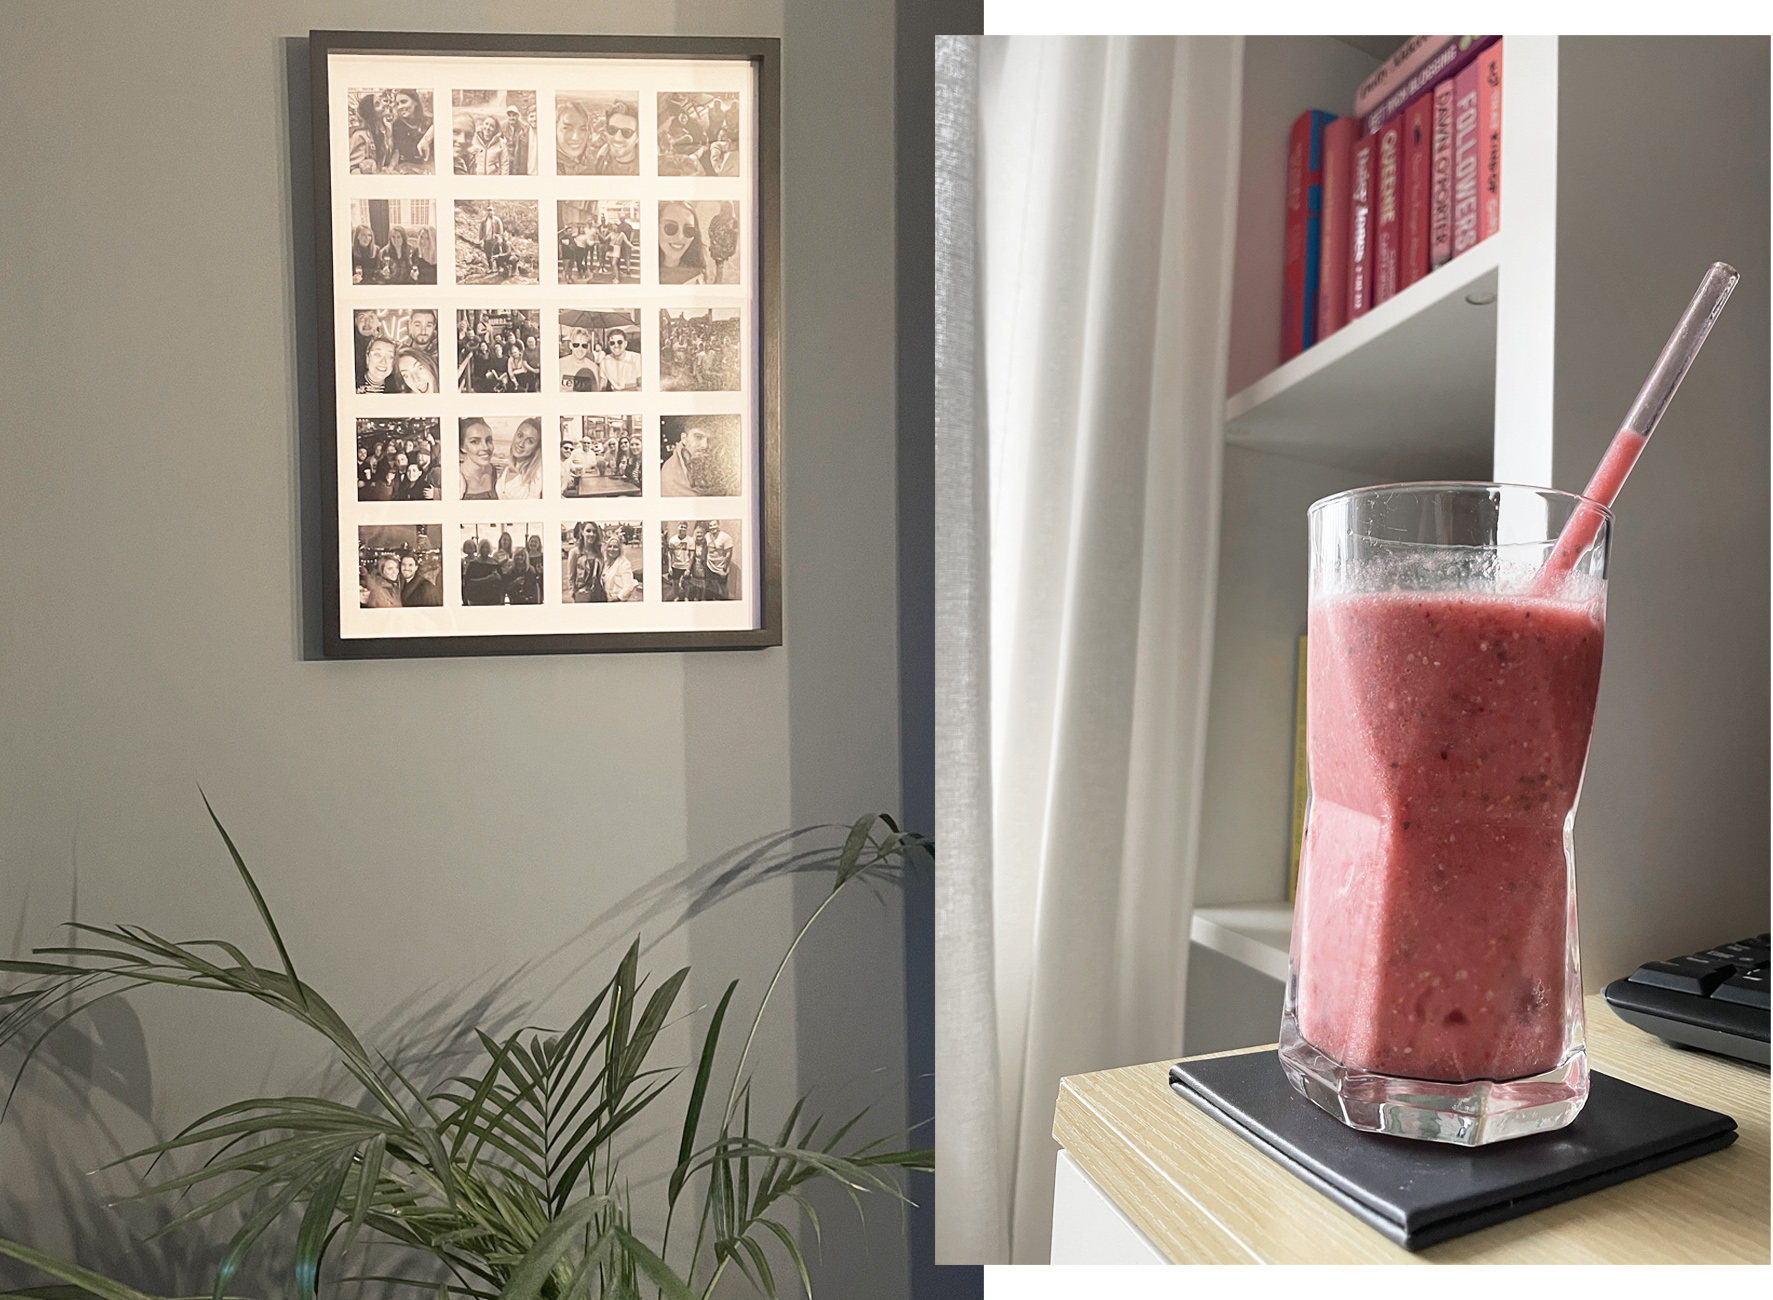 fruit smoothie and home interior